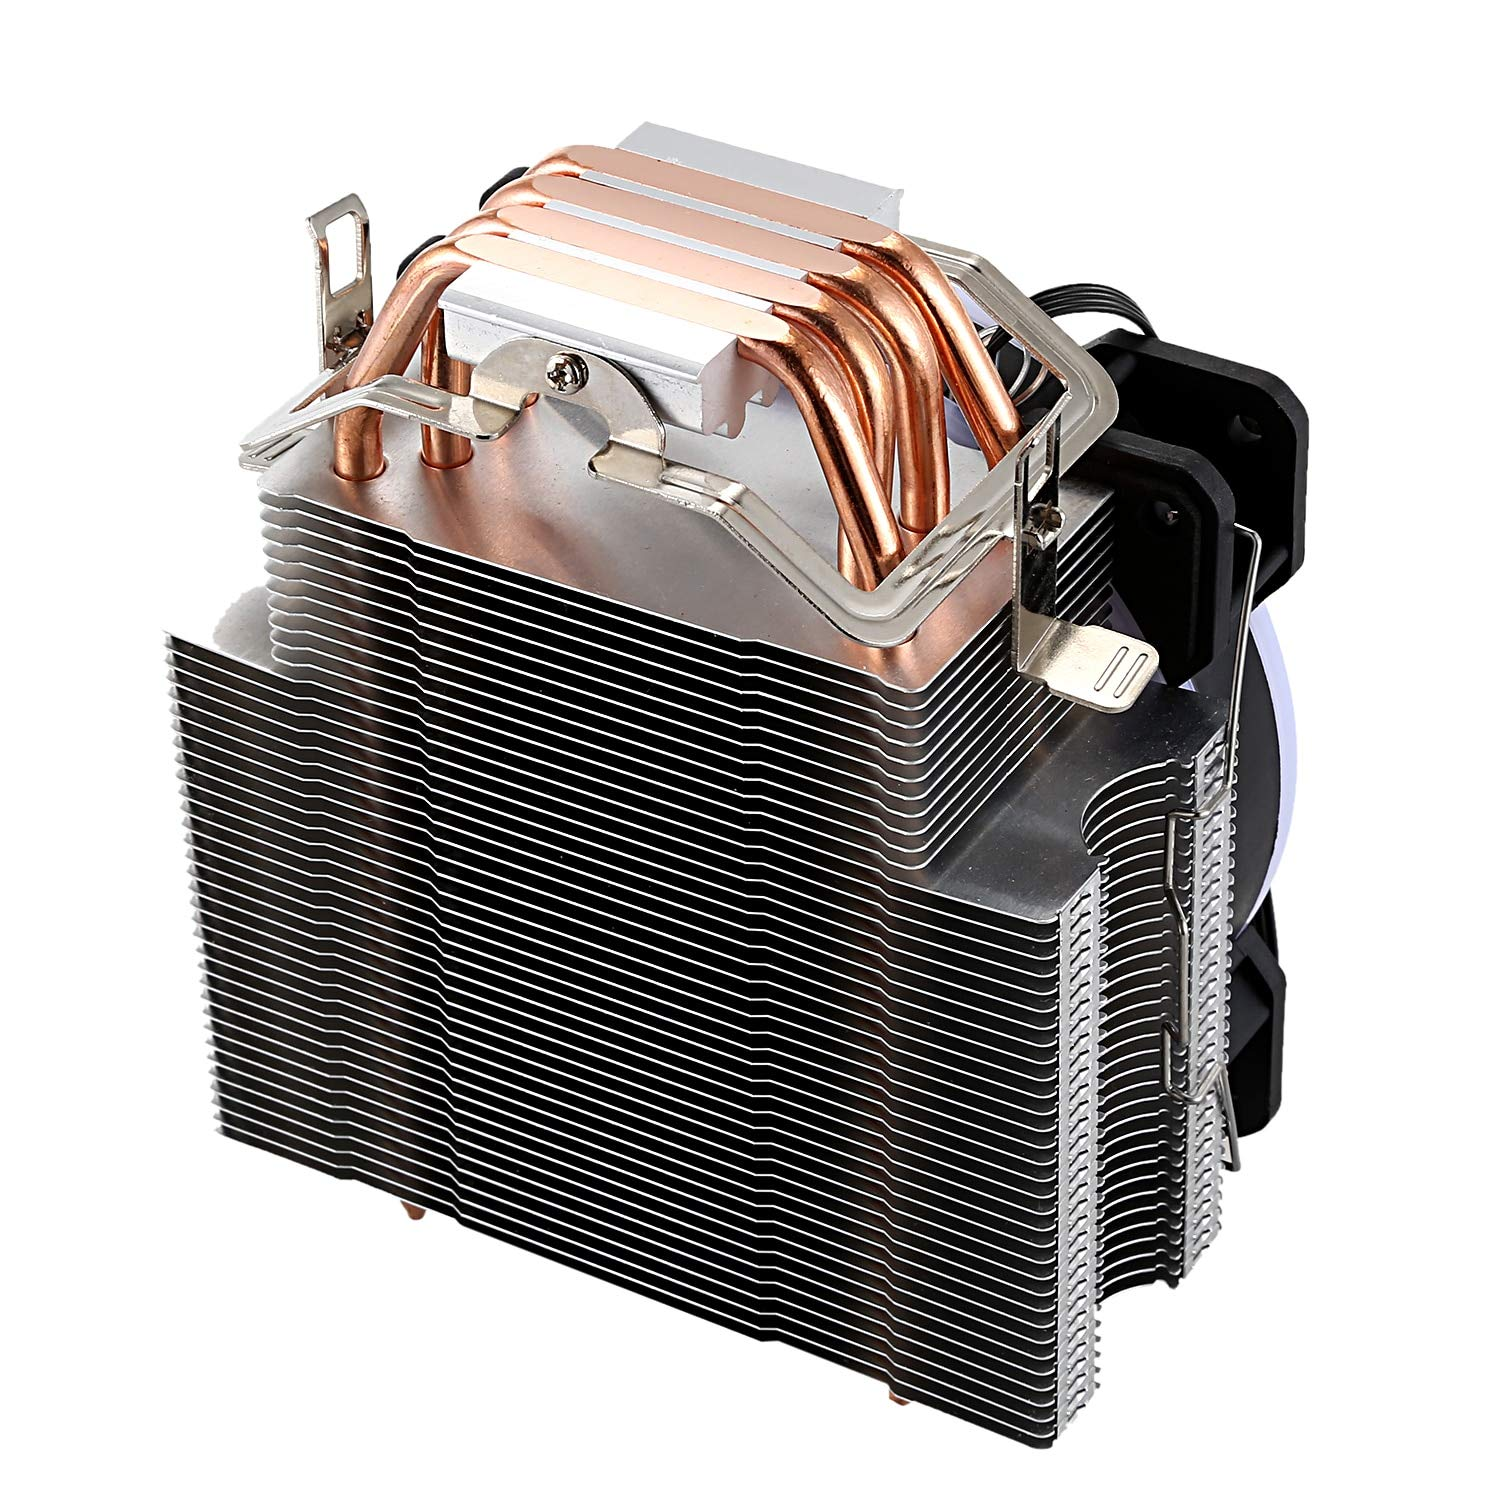 YOUKITTY LED CPU Cooler Master 5 Direct Contact Heatpipes Freeze Tower Cooling System CPU Cooling Fan with PWM Fans